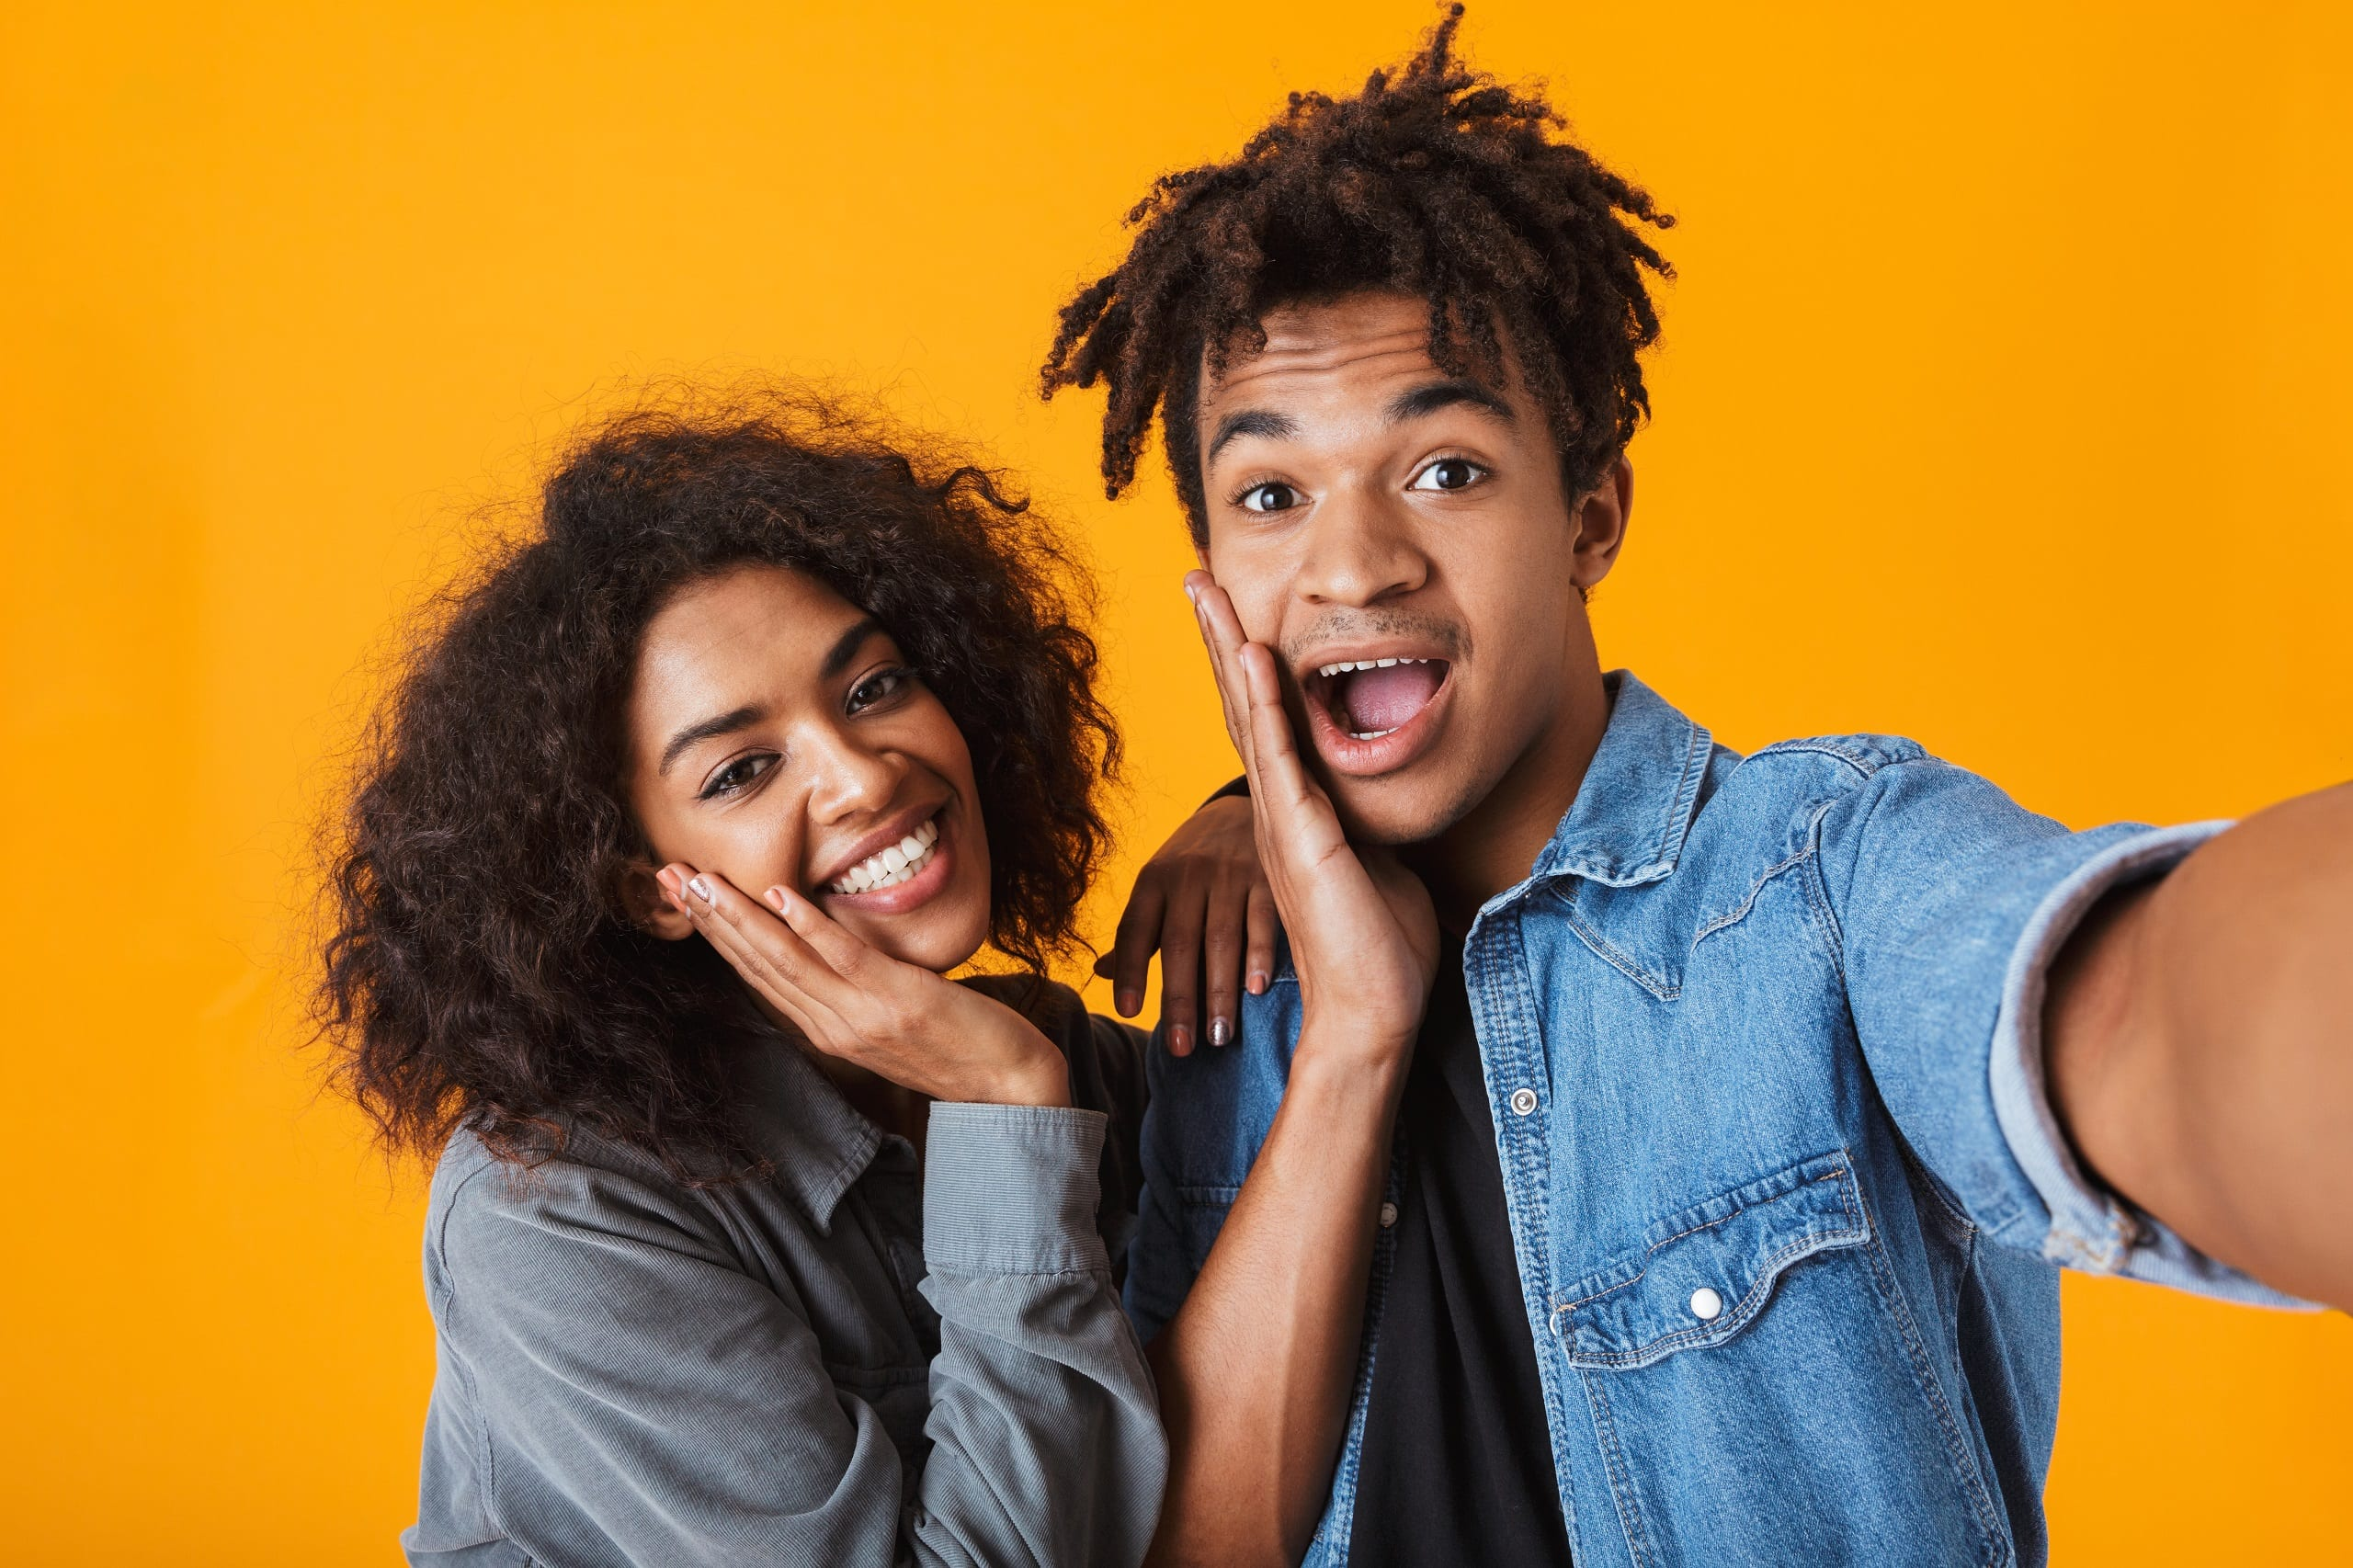 Cheerful young black couple standing isolated over orange background, taking a selfie. Perfect Friendlationship photo.